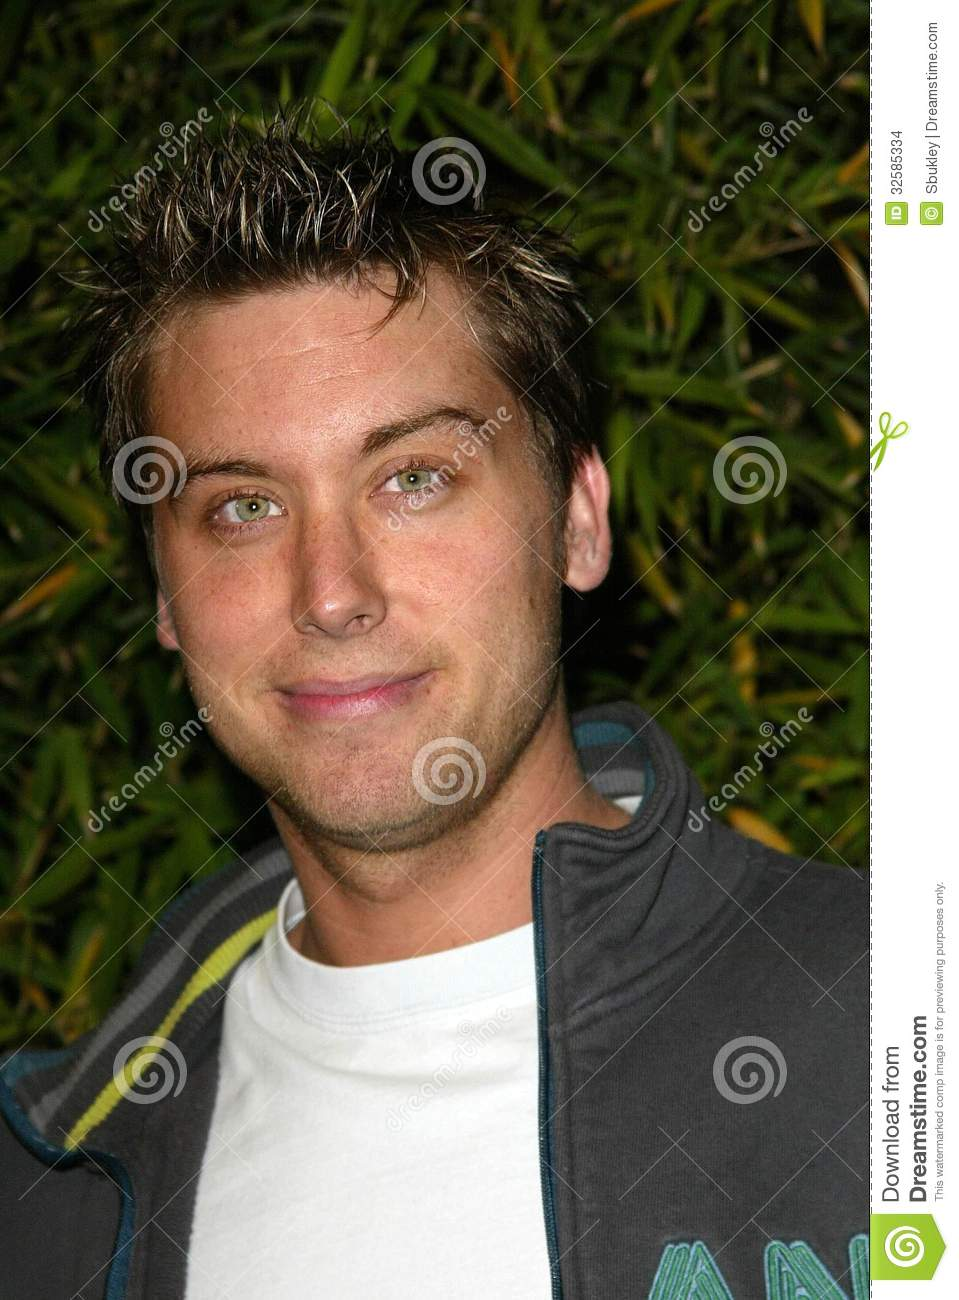 <b>...</b> et le lancement de Brandon Davis <b>Jean. Faucon</b>, Los Angeles, CA 04-24-06. - lance-bass-32585334